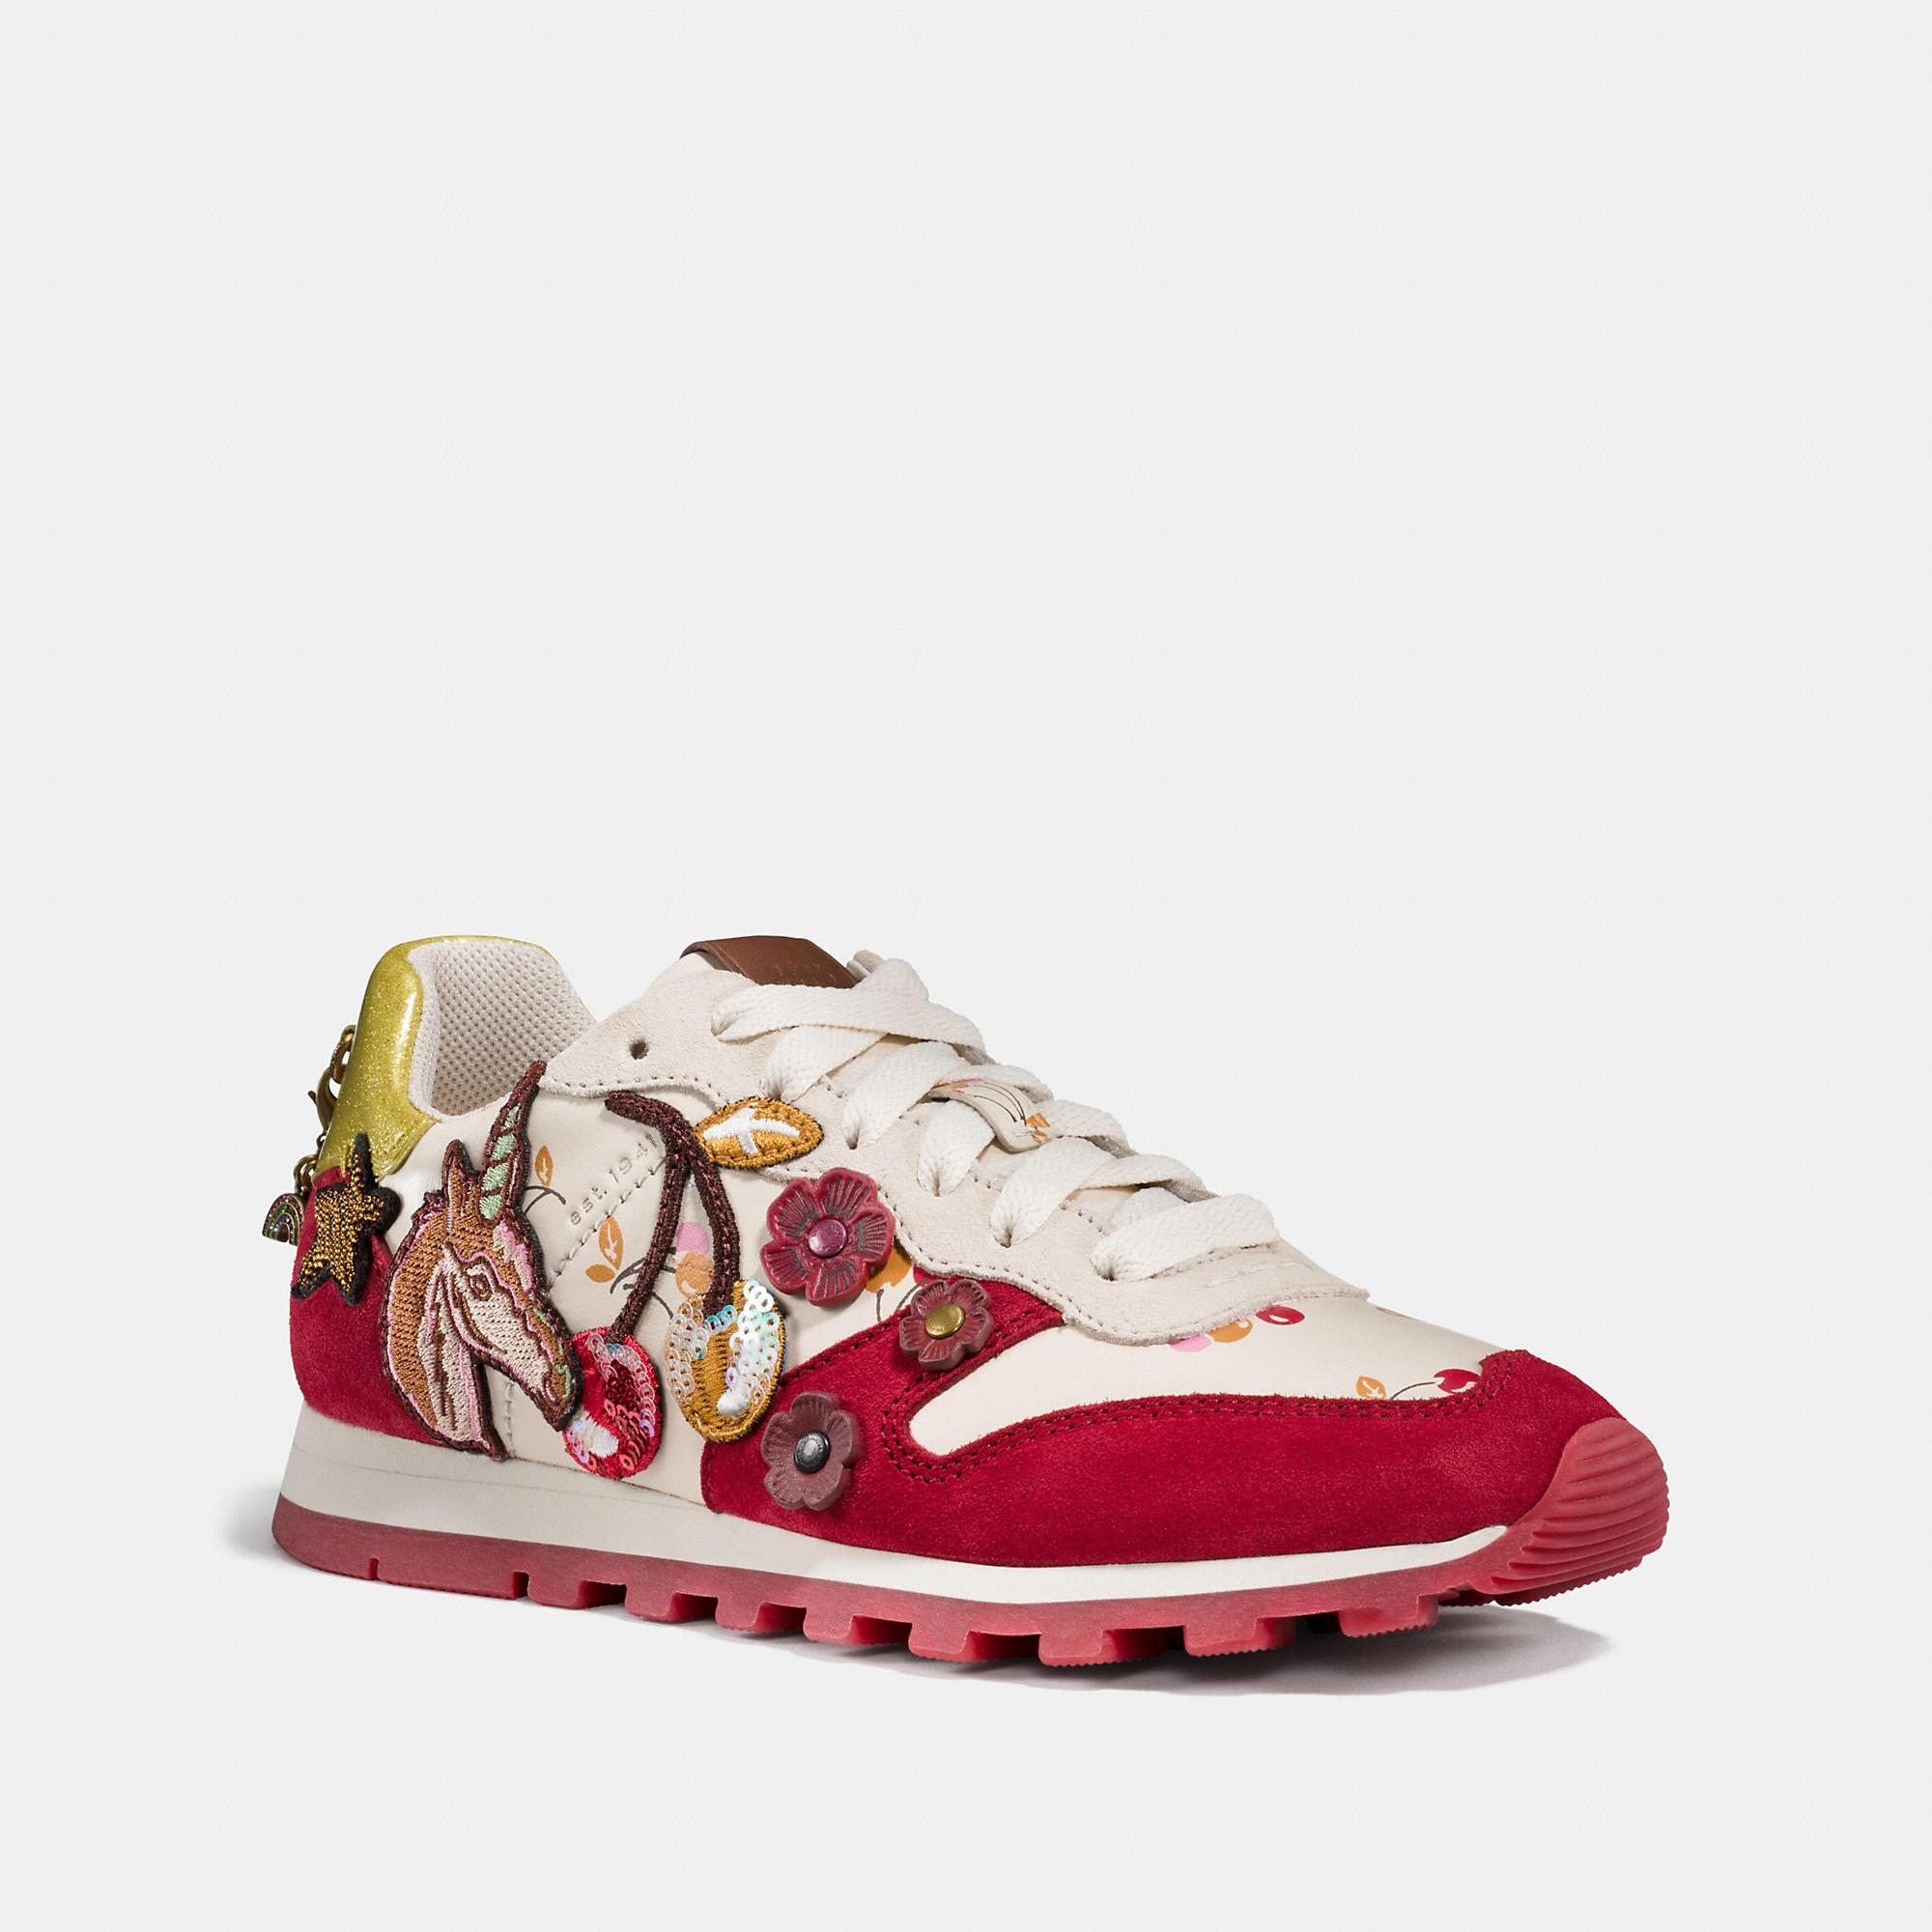 4c633ce8 Coach C125 Runner With Uni Patches - Women's in Ivory/Red